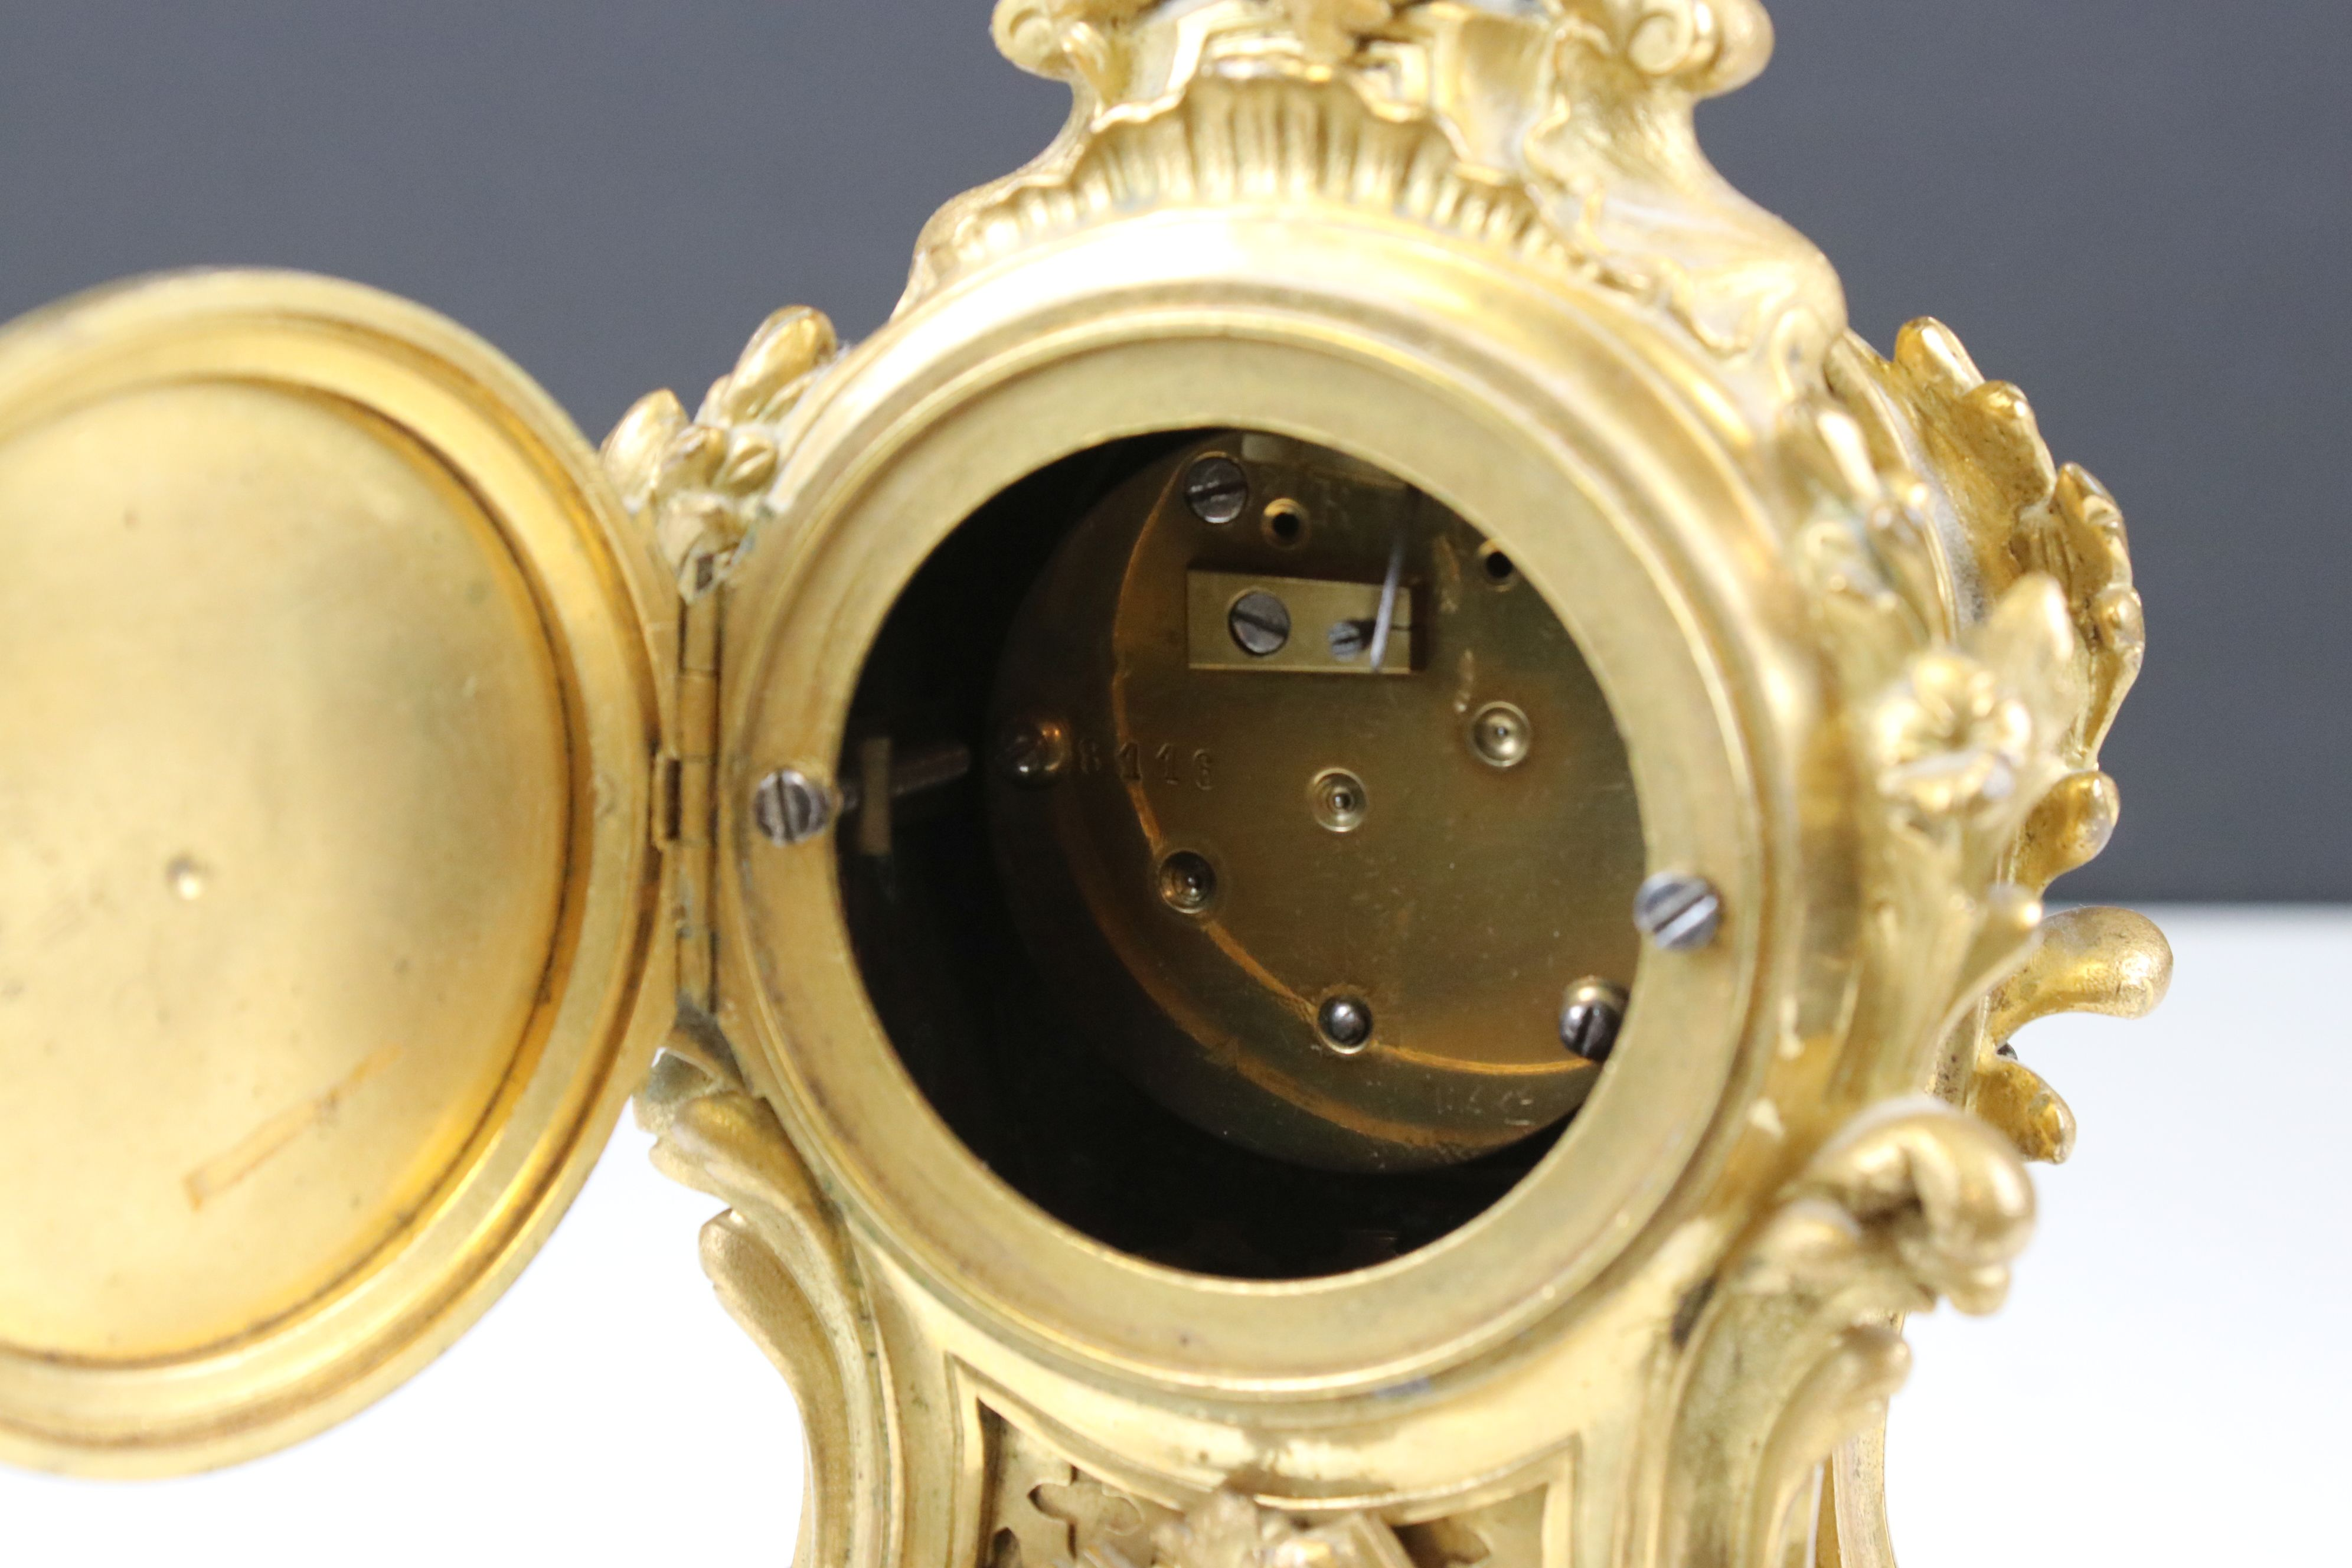 Late 19th century French gilt metal Clock, painted dial in scrolling 18th century style case- gilded - Image 7 of 7